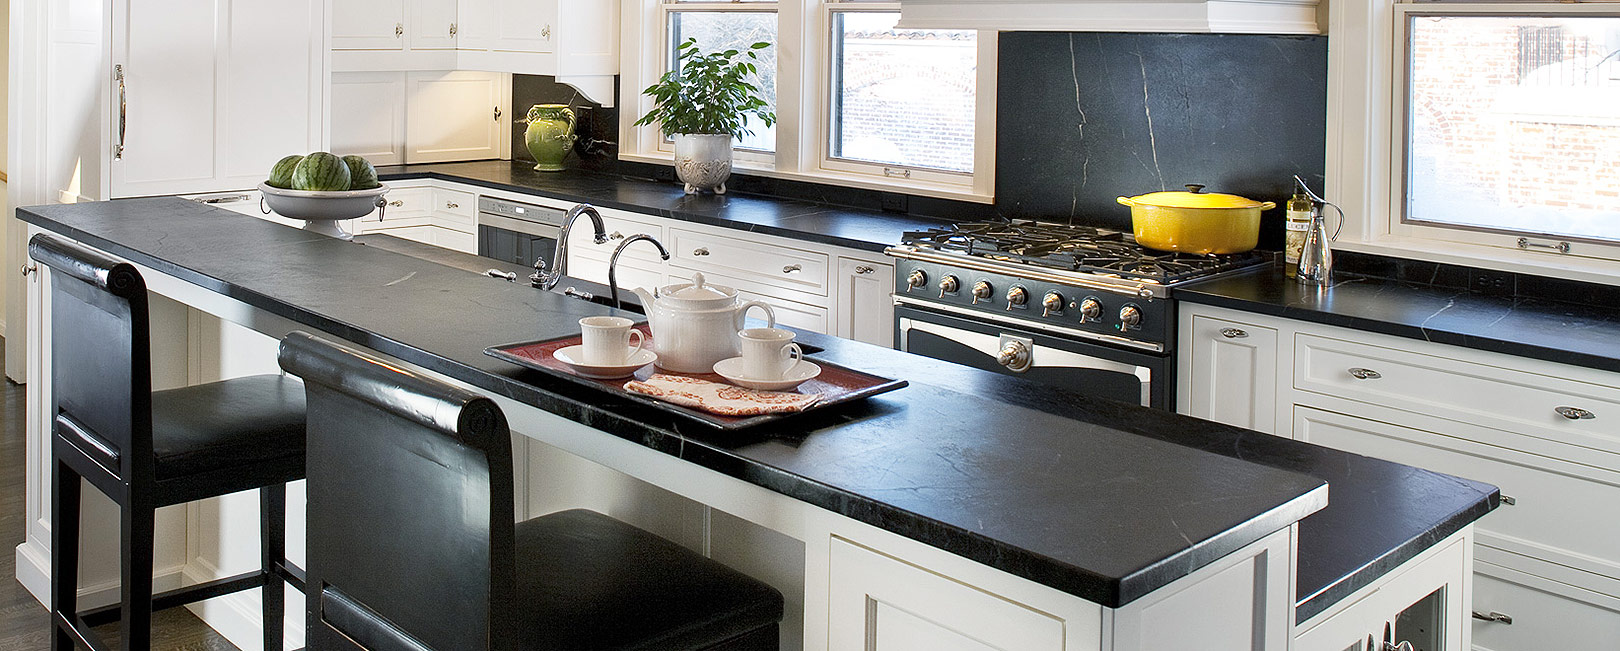 all you need to know about soapstone countertops soapstone kitchen countertops Finished soapstone kitchen countertop Photo Source RSWStone